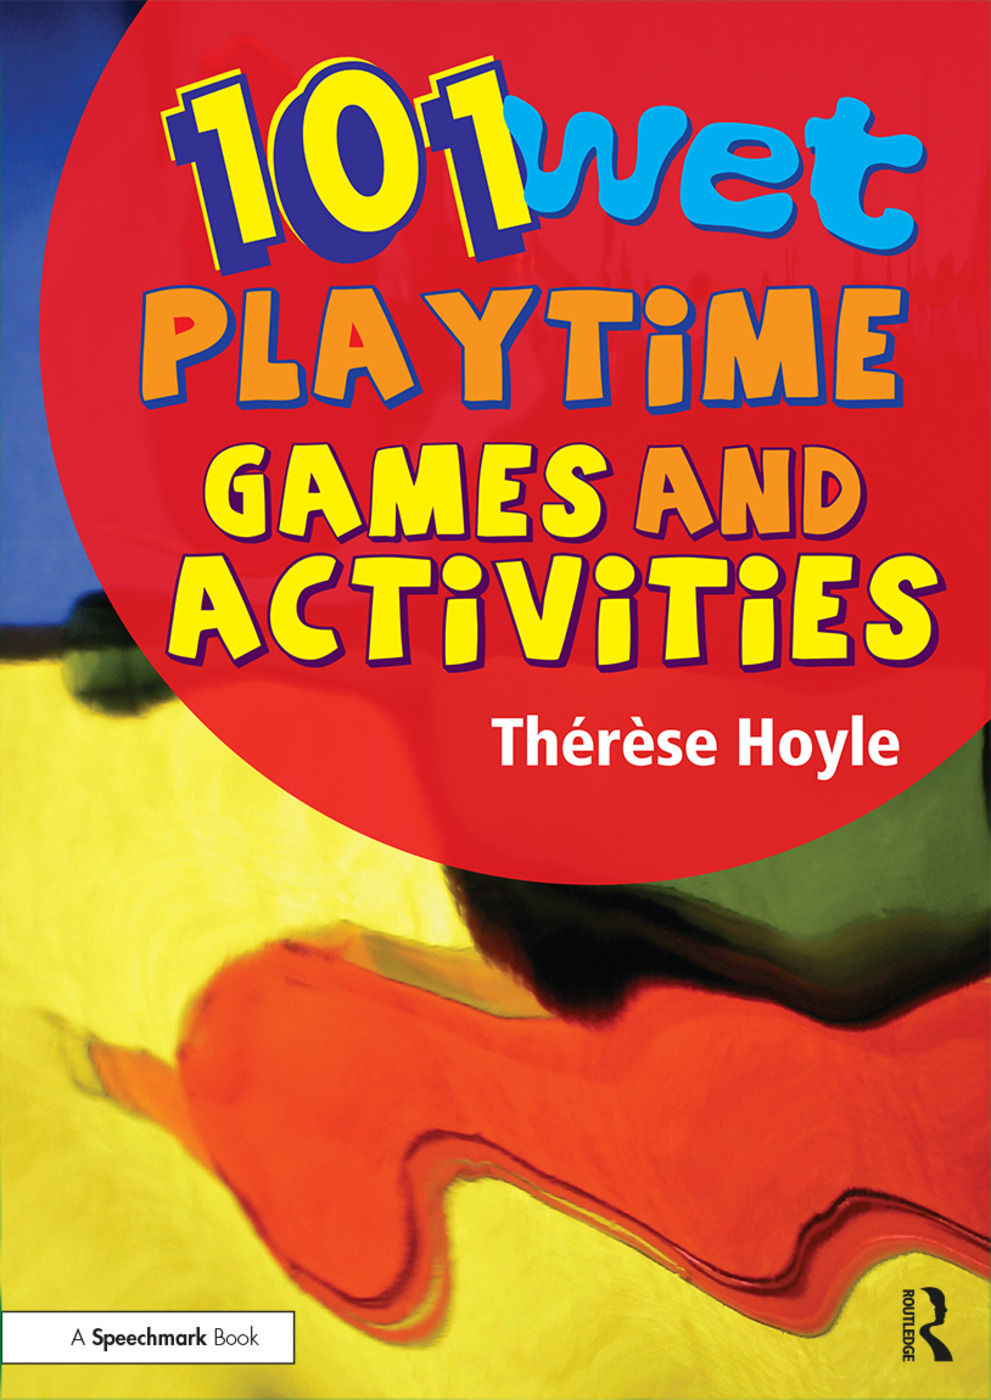 101 Wet Playtime Games and Activities: 1st Edition (Paperback) book cover